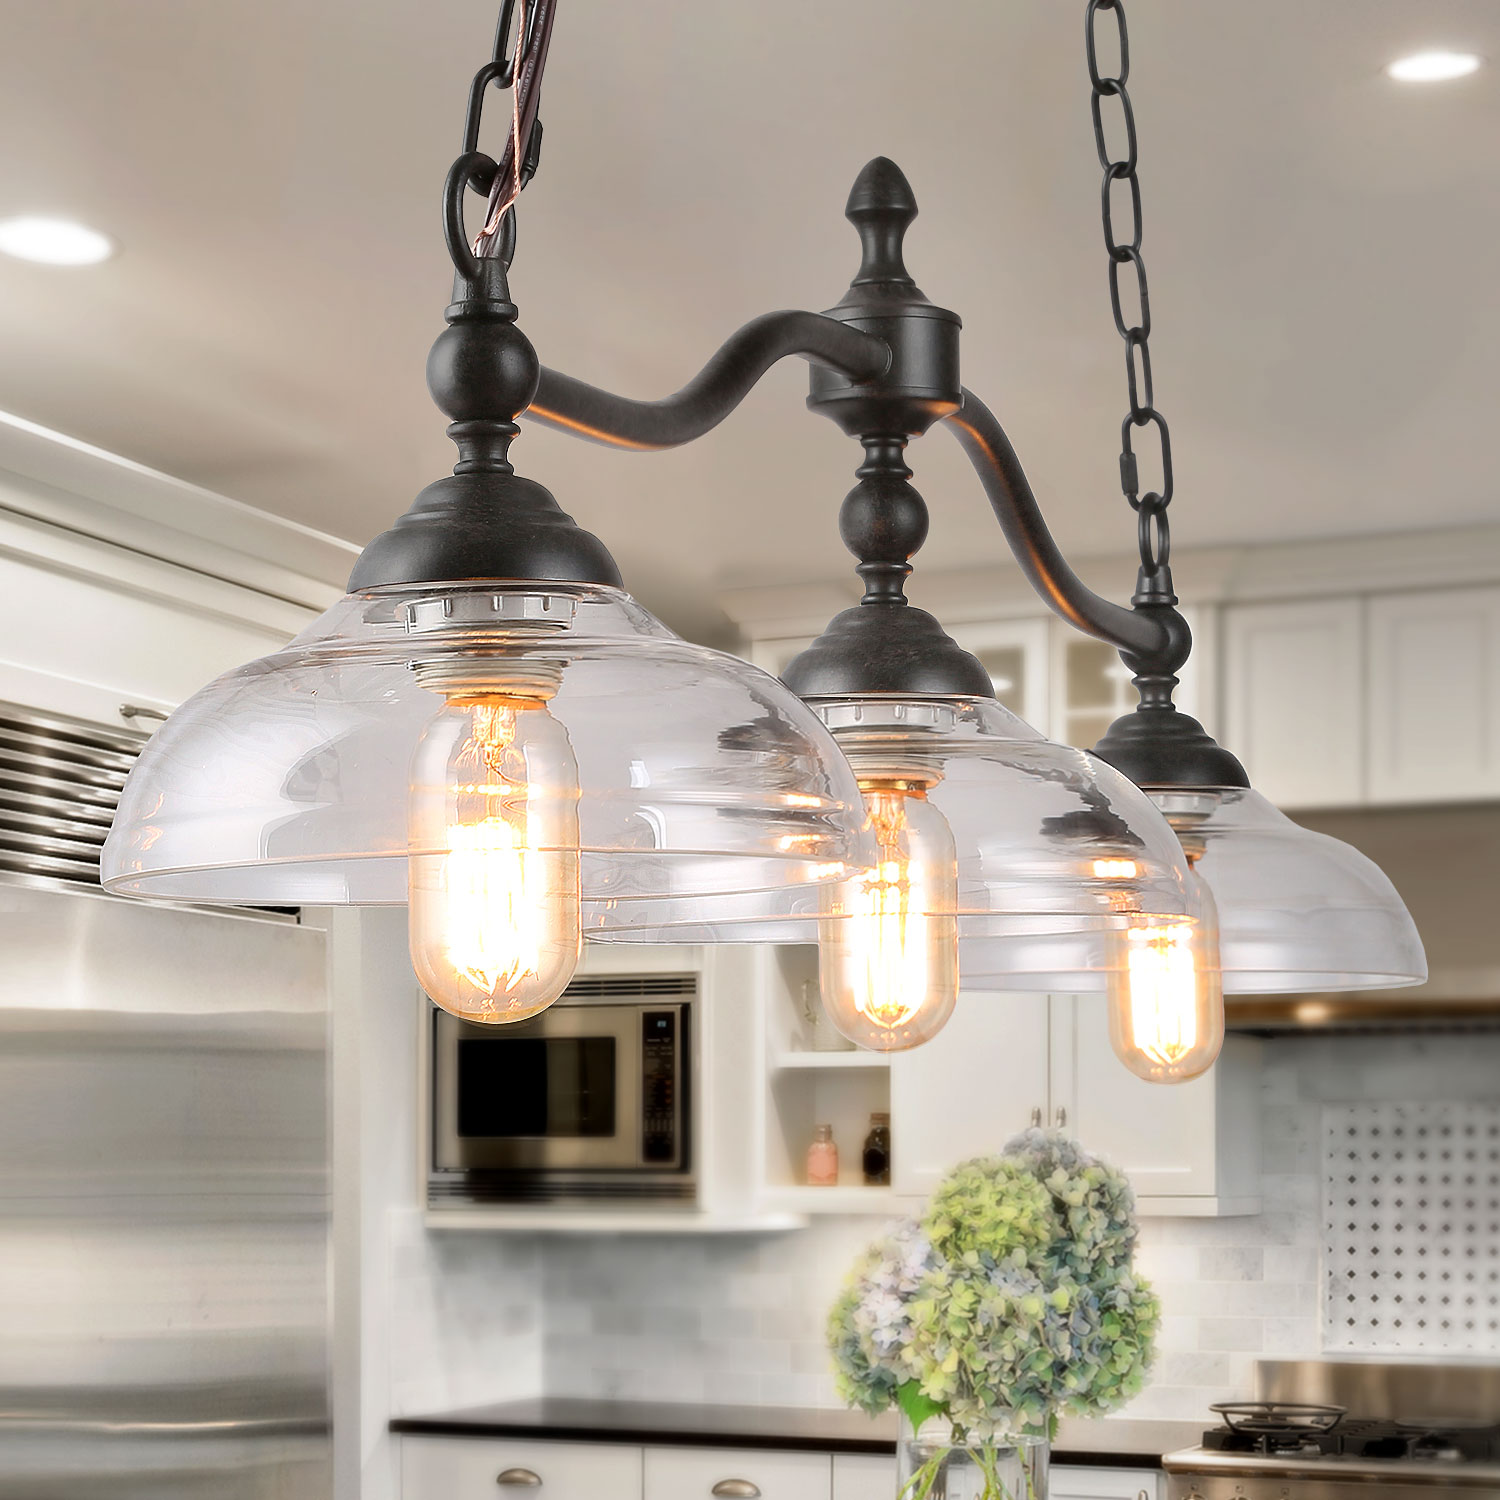 Lnc 3 Lights Island Hanging Lighting For Kitchen Island In Rusty Black Metal Finish With Clear Glass Shades 38 1 Large Chandelier Pendant Light Walmart Com Walmart Com